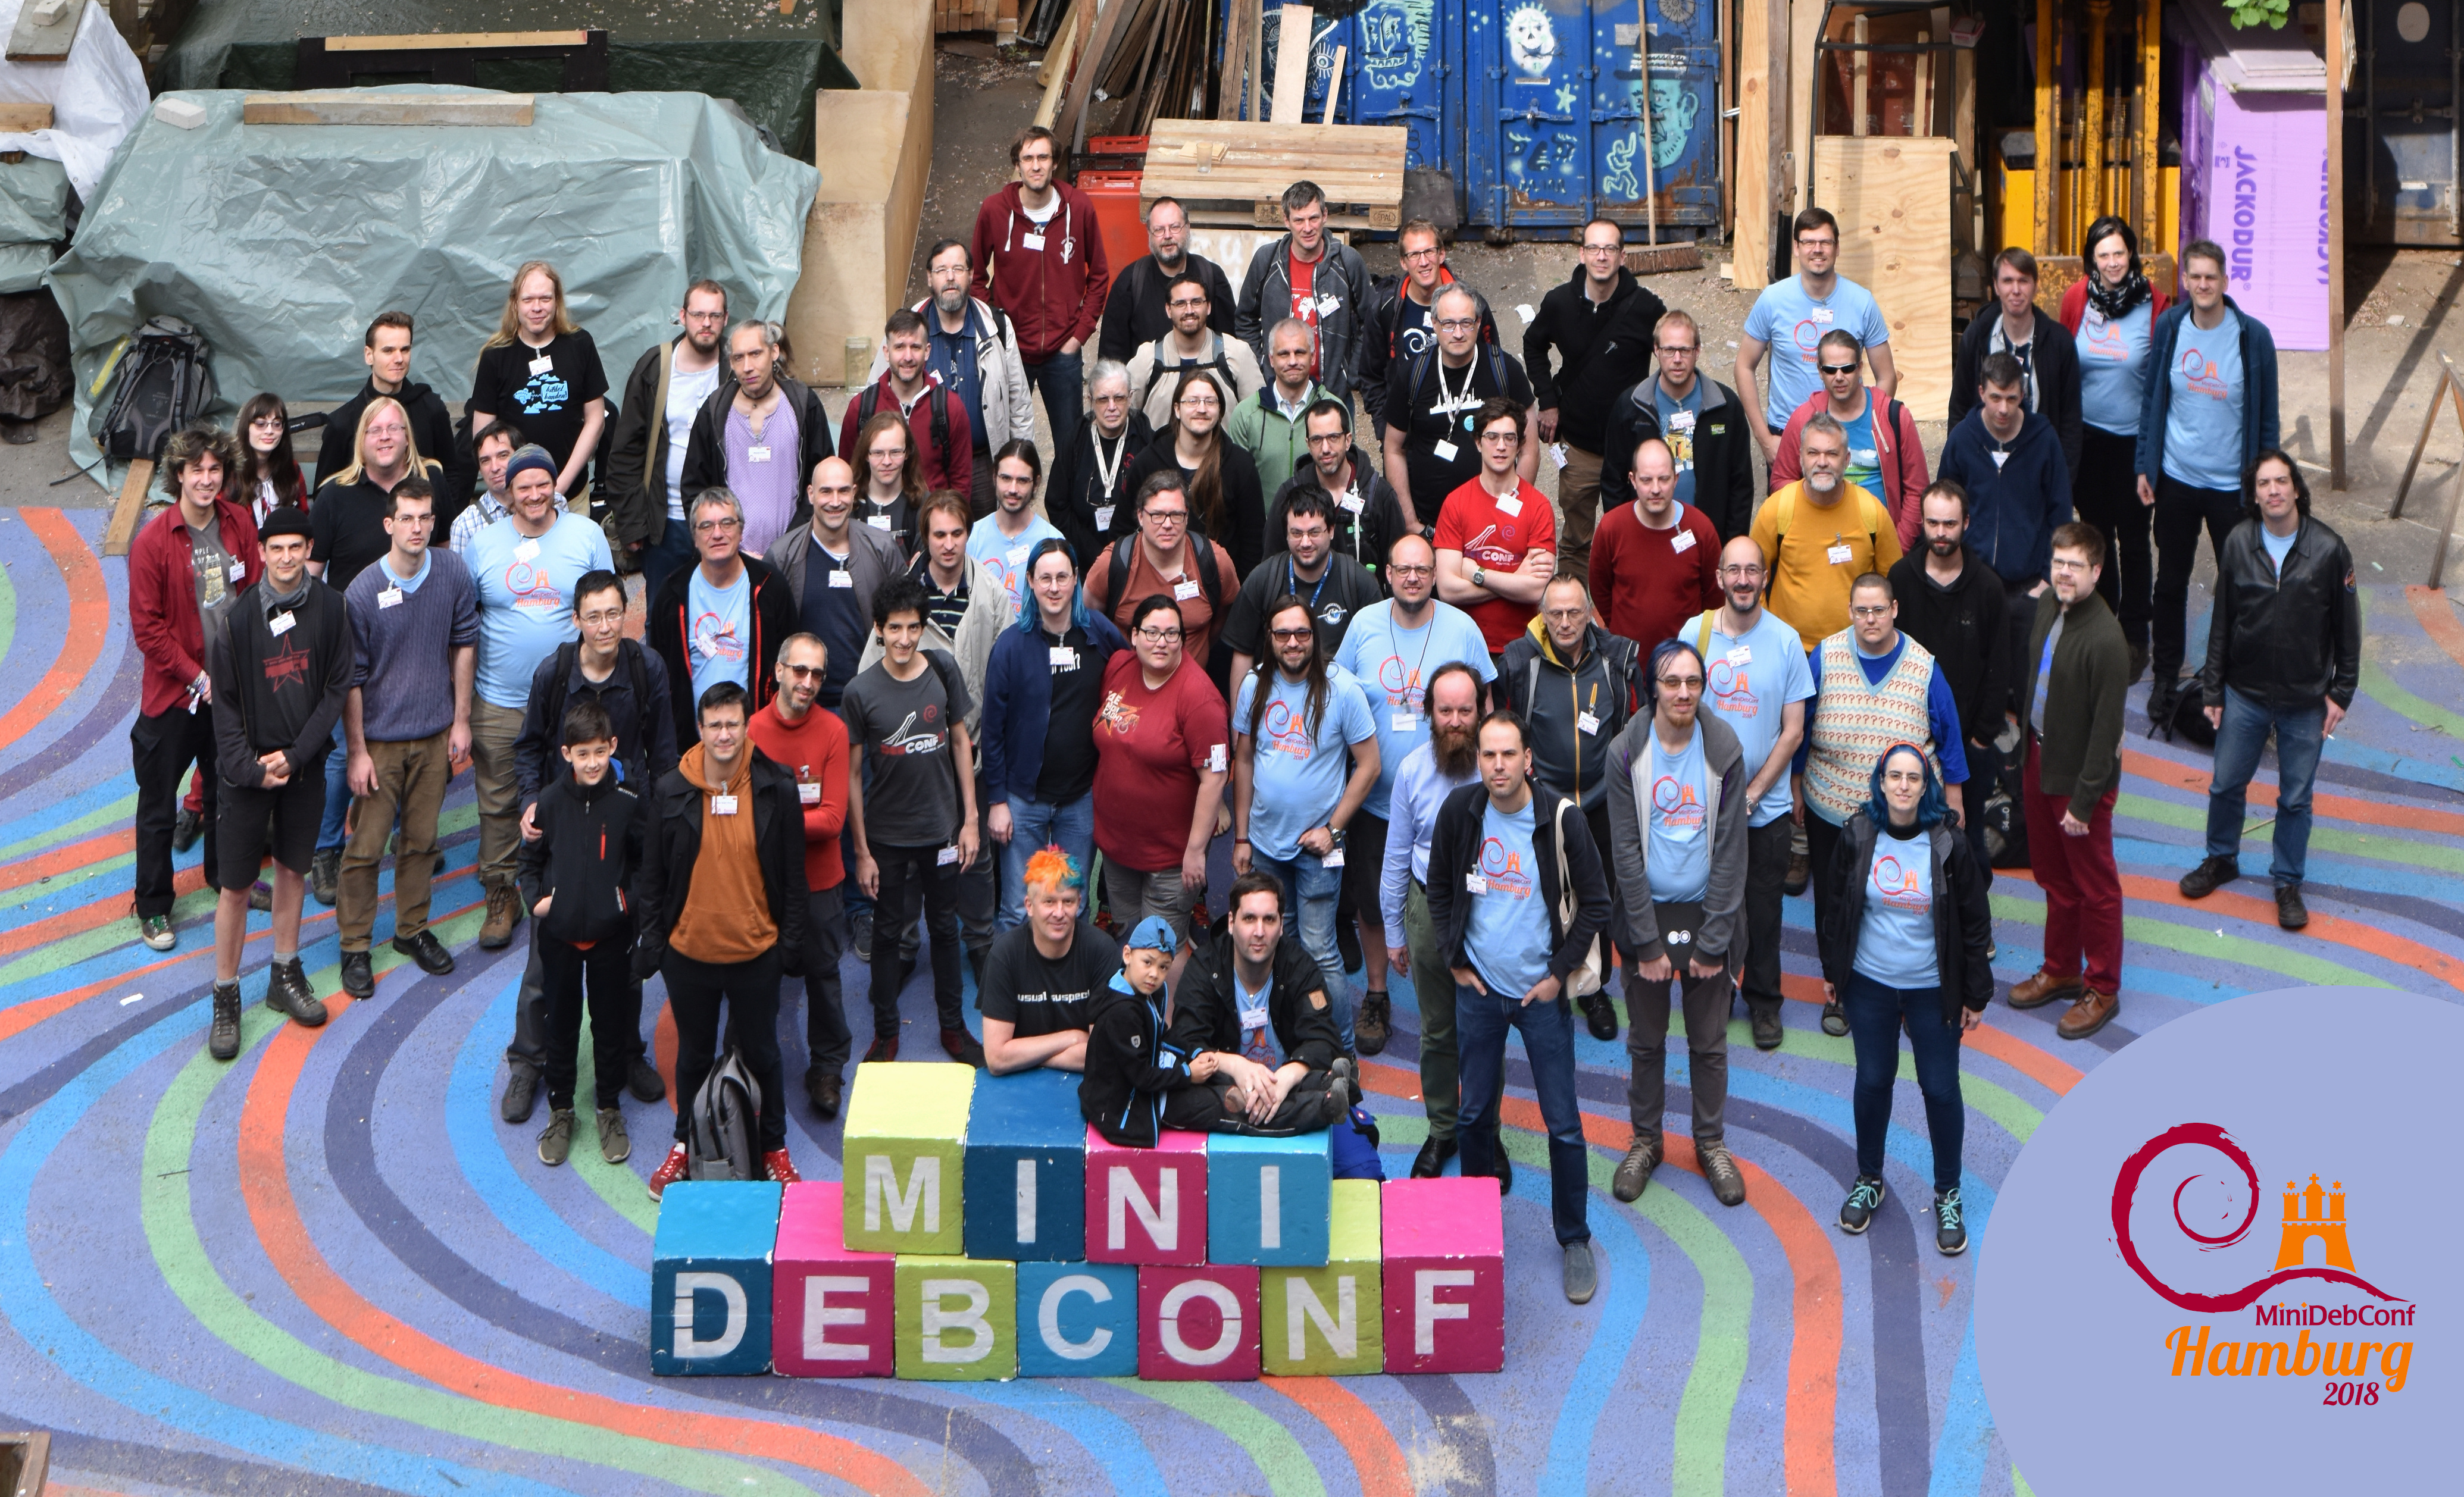 MiniDebConf 2018 Hamburg Group Photo